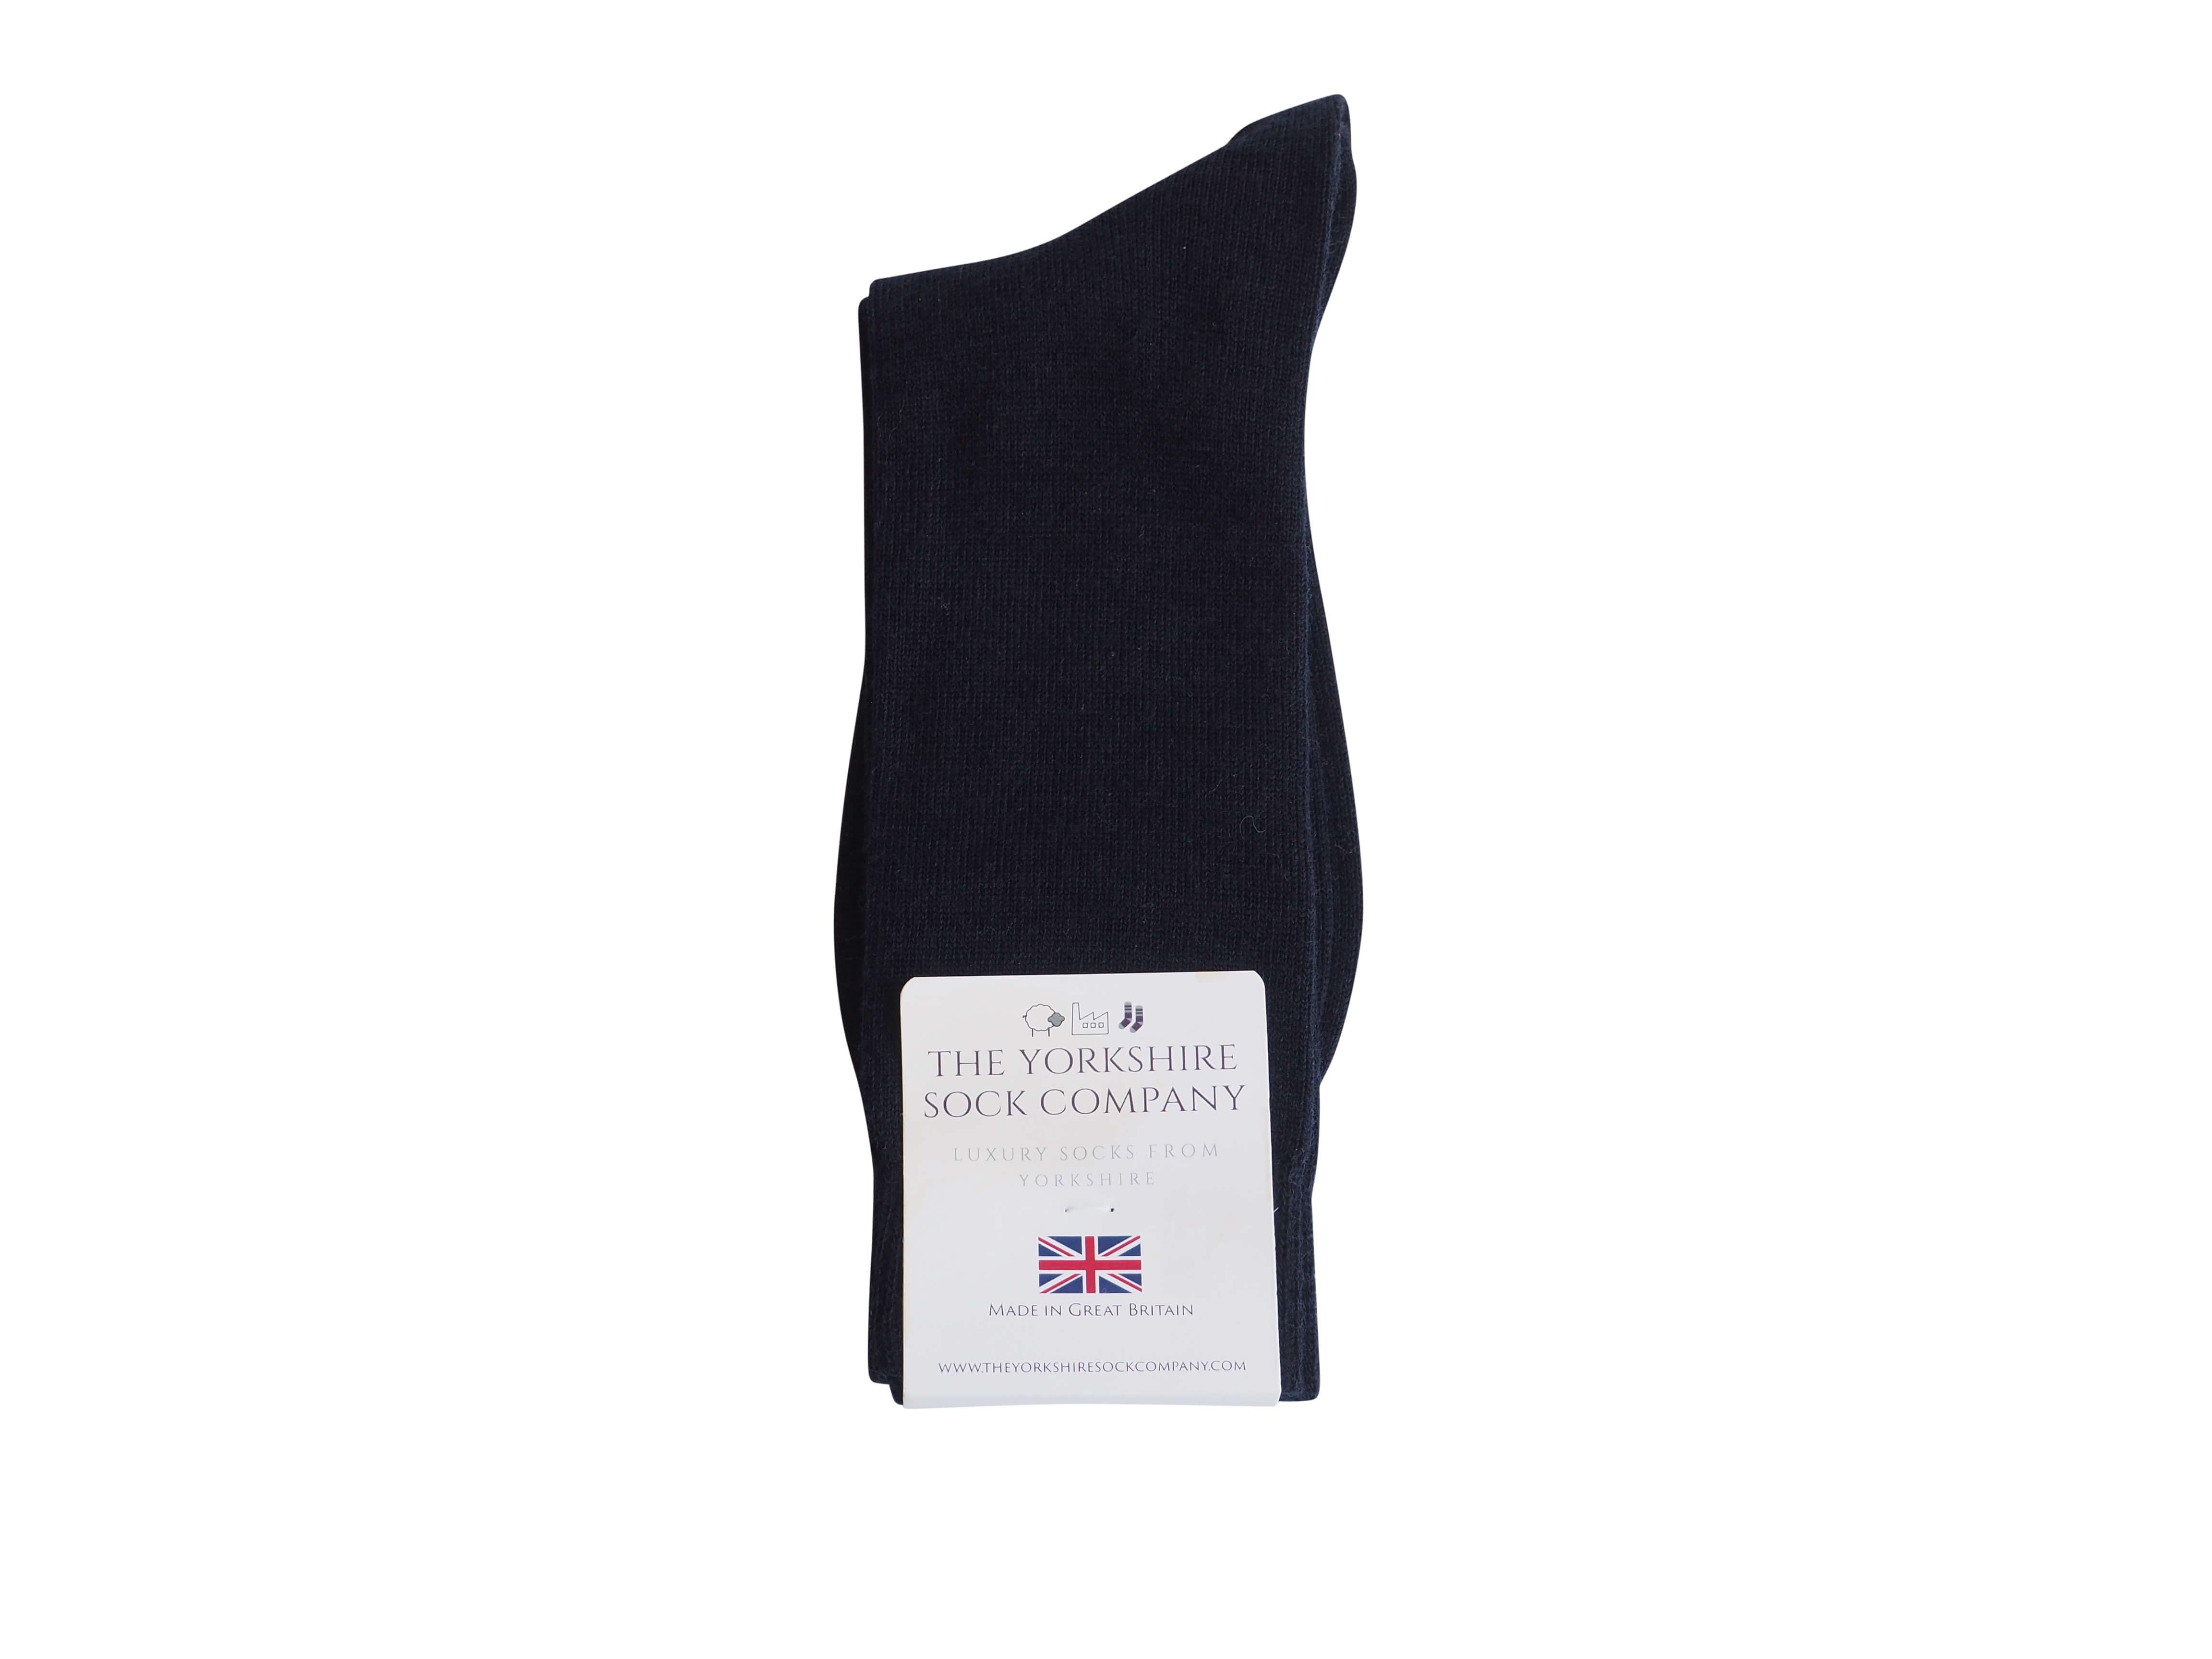 natural-merino-wool-yorkshire-socks-brown-packed